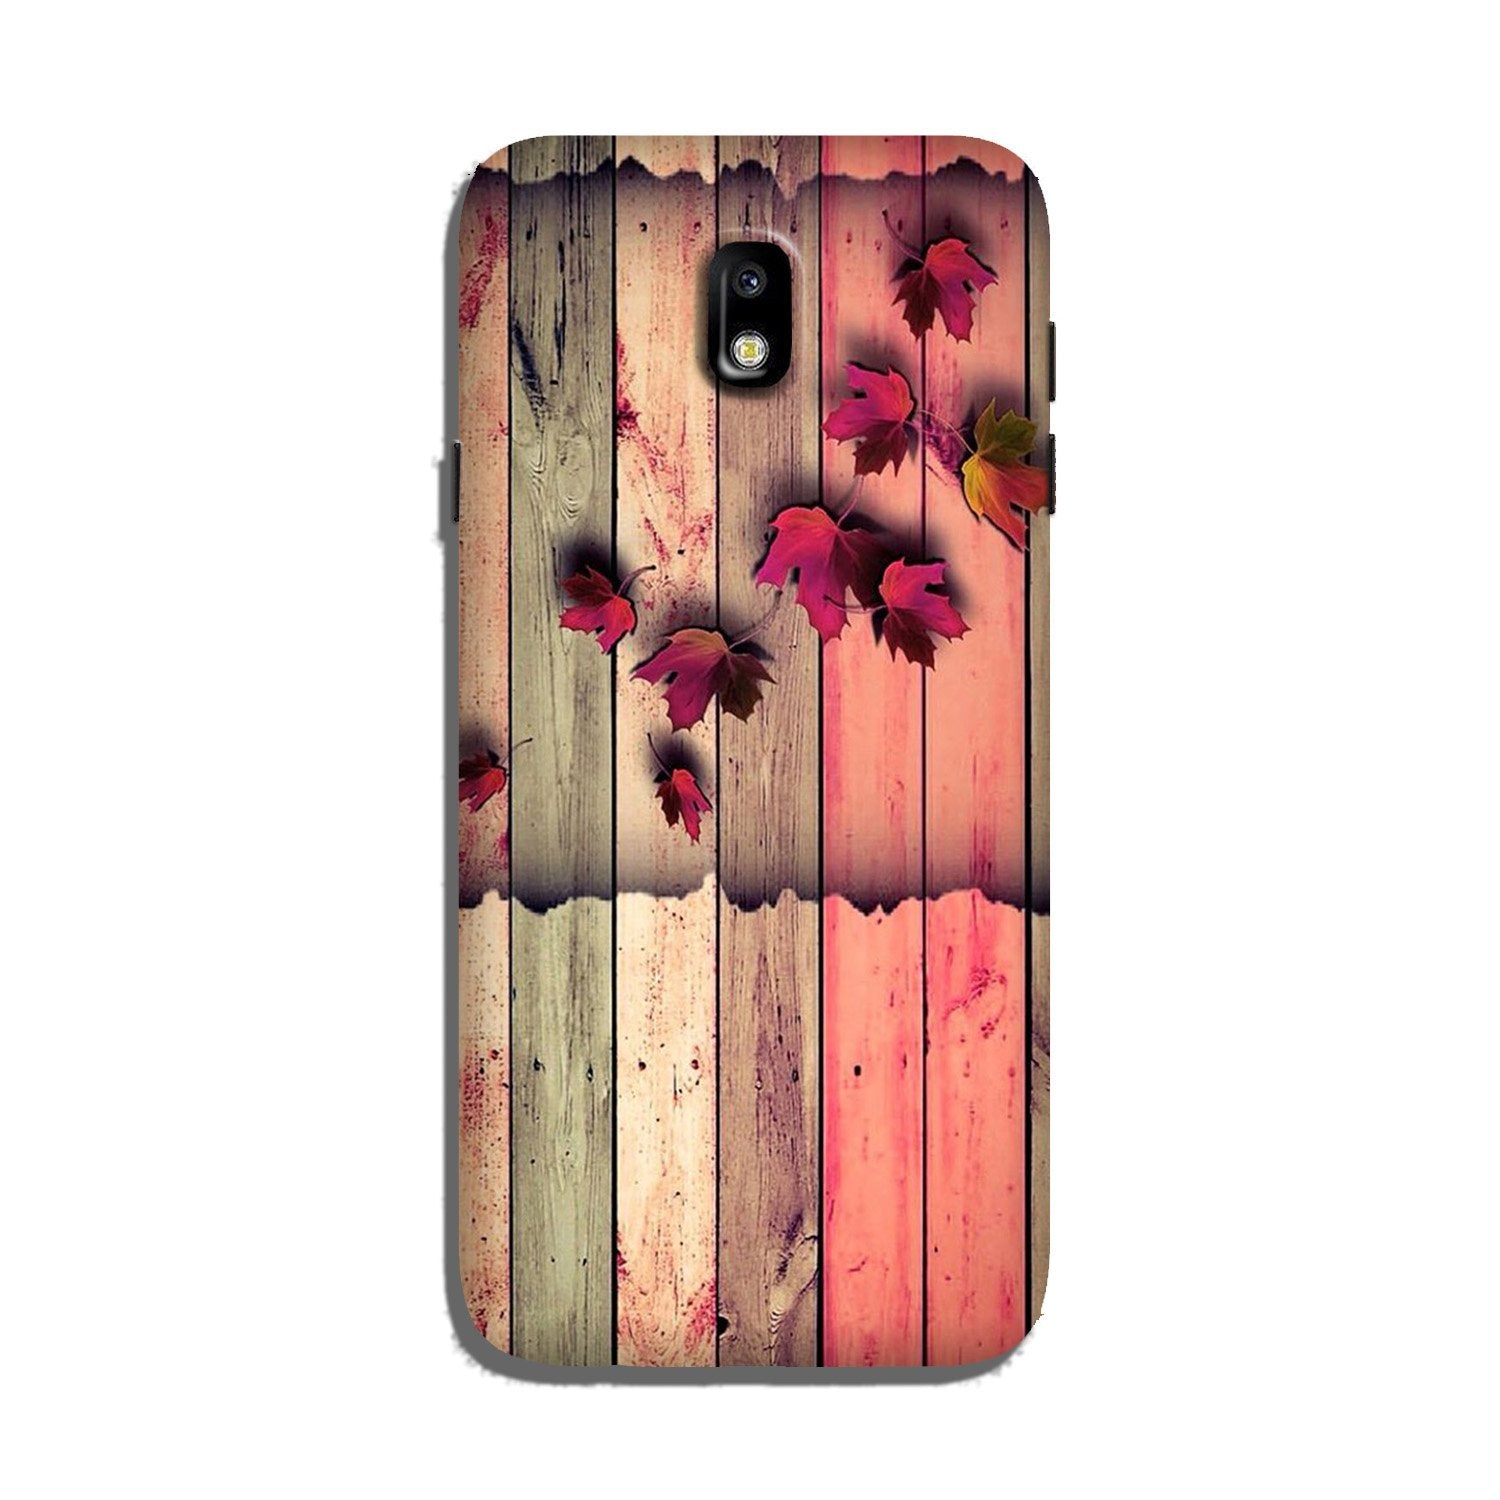 Wooden look2 Case for Galaxy J7 Pro